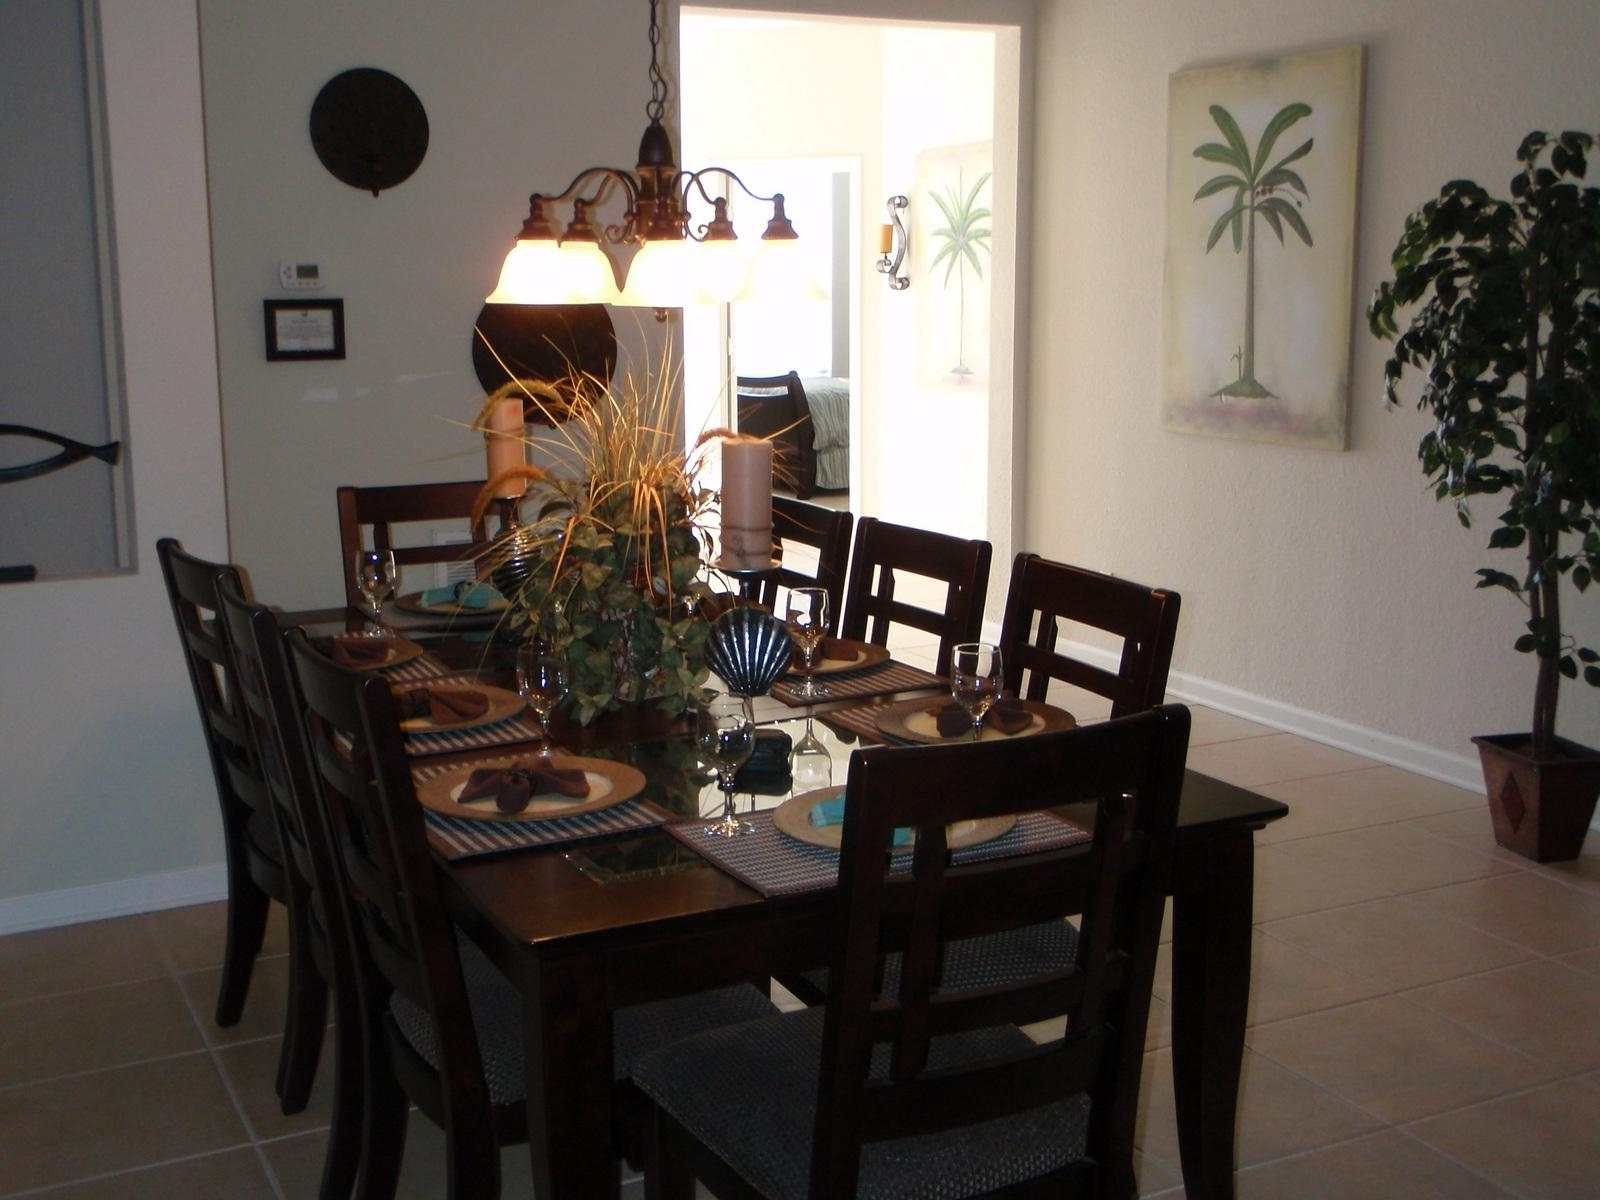 Dining Tables For Eight in Well-liked 8 Seater Dining Table With Rough Tile Flooring And Chandelier Over